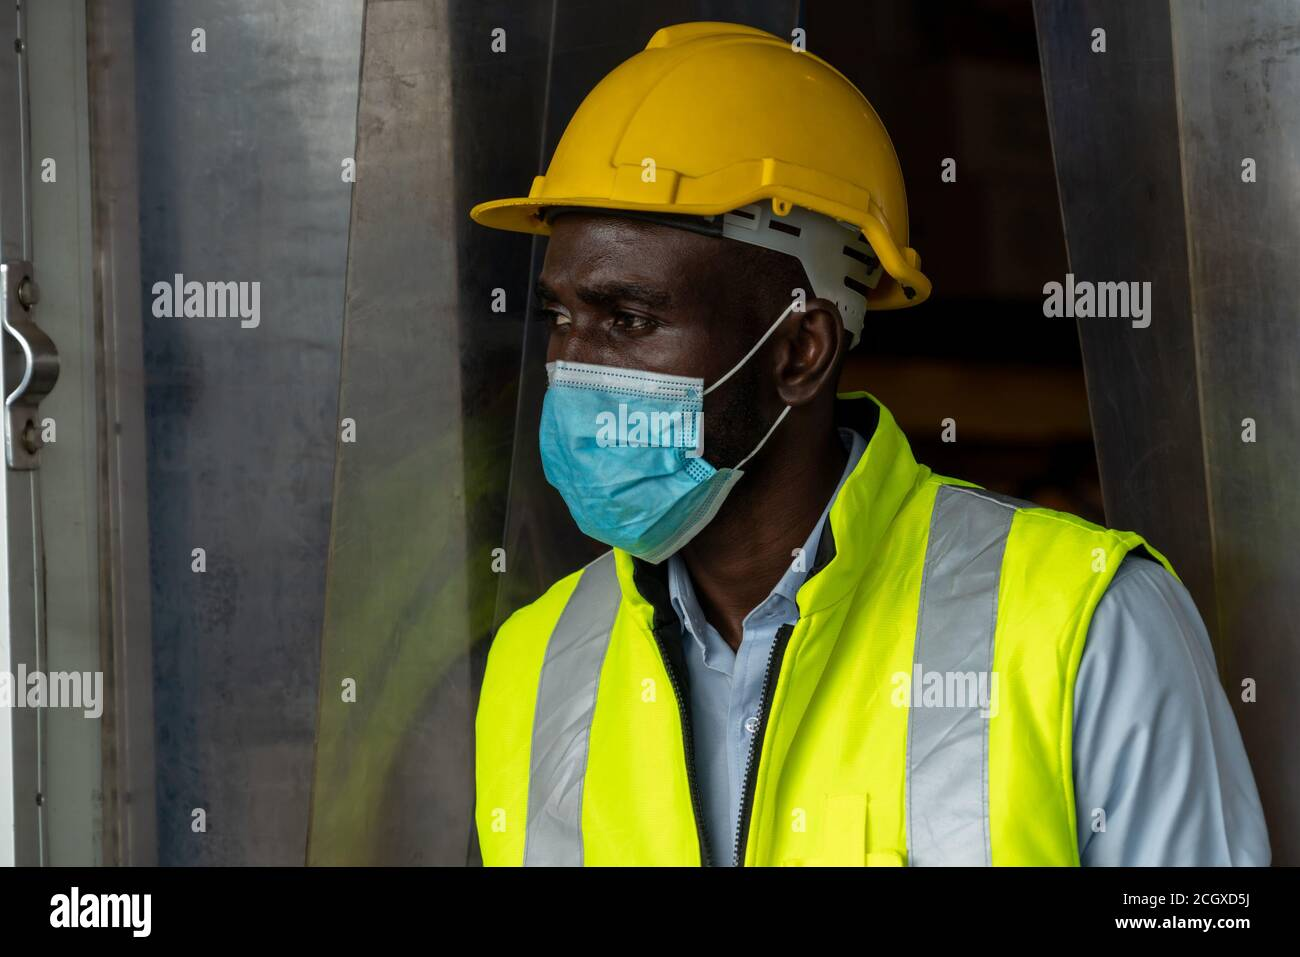 Factory industry worker working with face mask to prevent Covid-19 Coronavirus spreading during job reopening period . Stock Photo